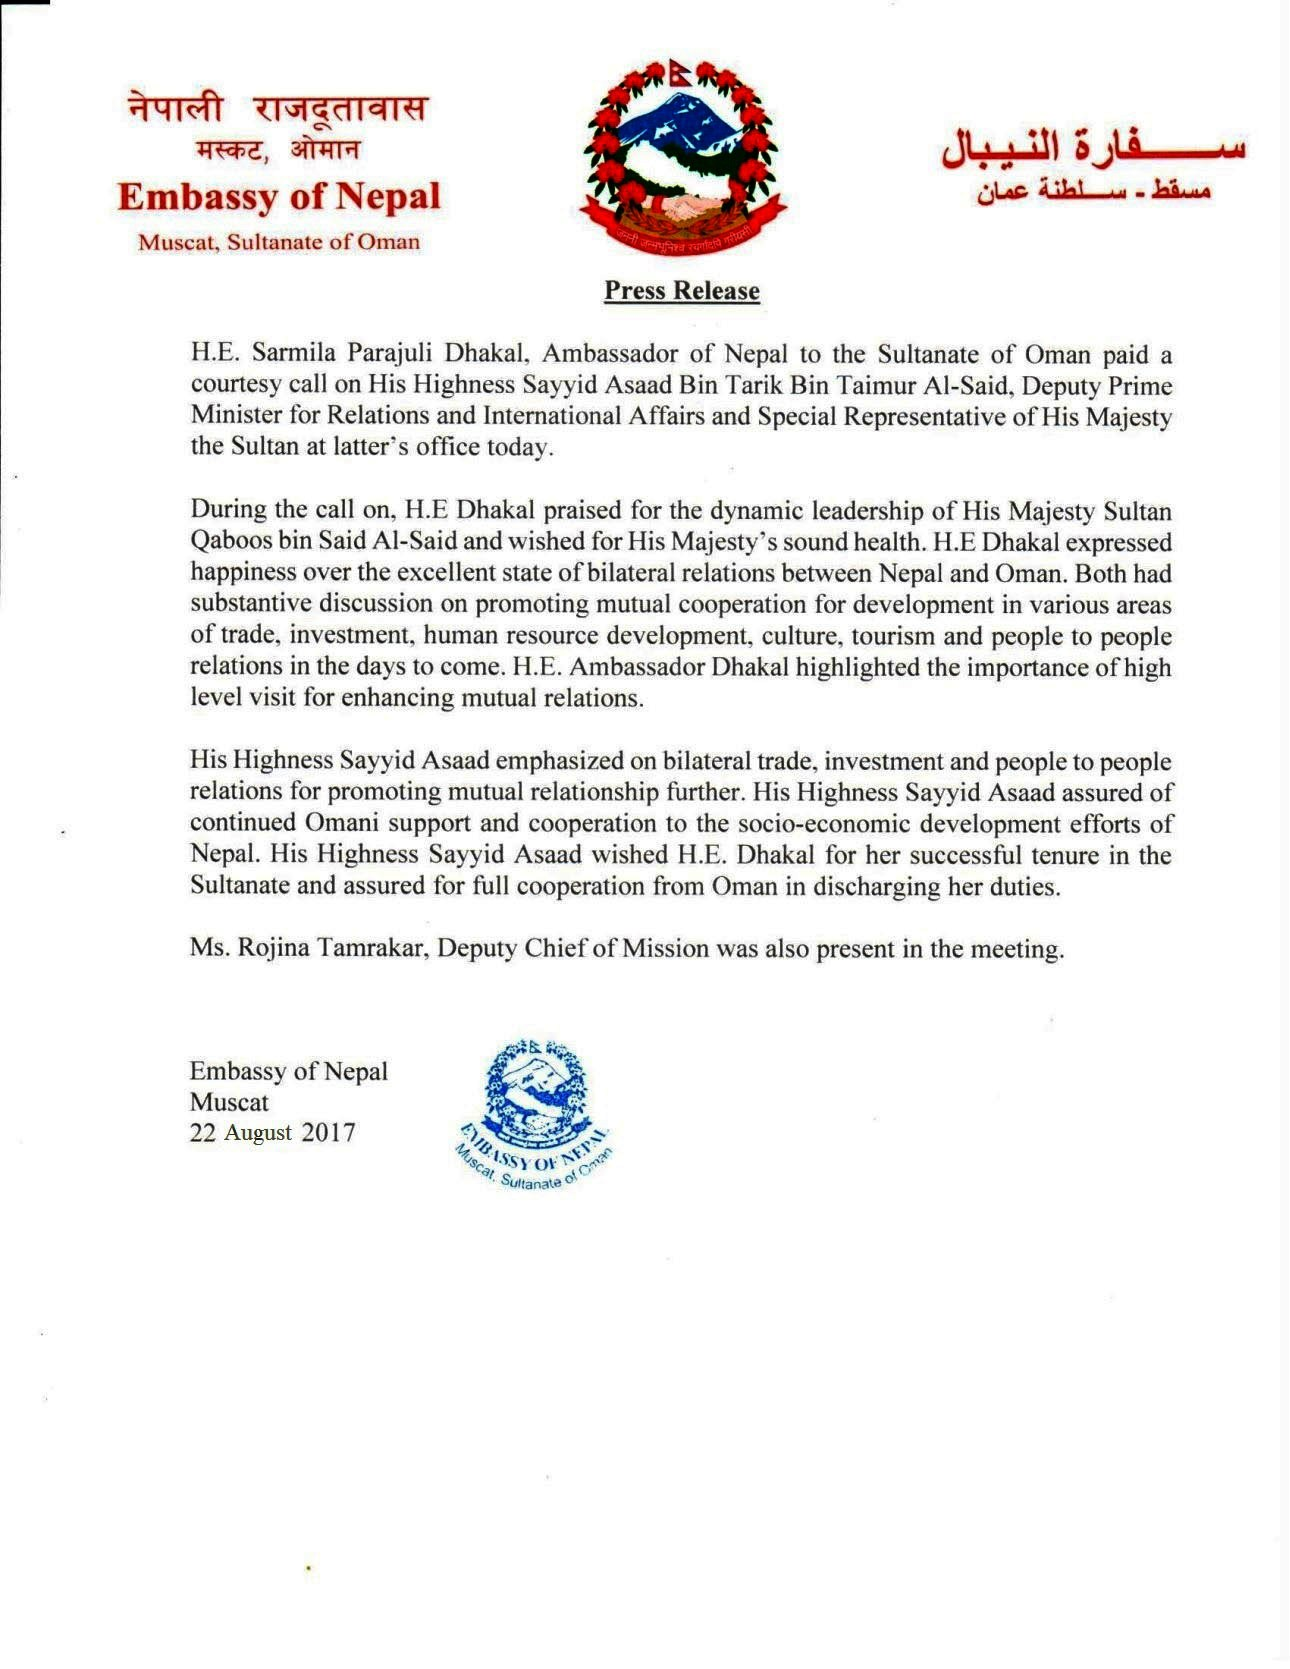 Press Release issued by Embassy of Nepal, Muscat on courtesy